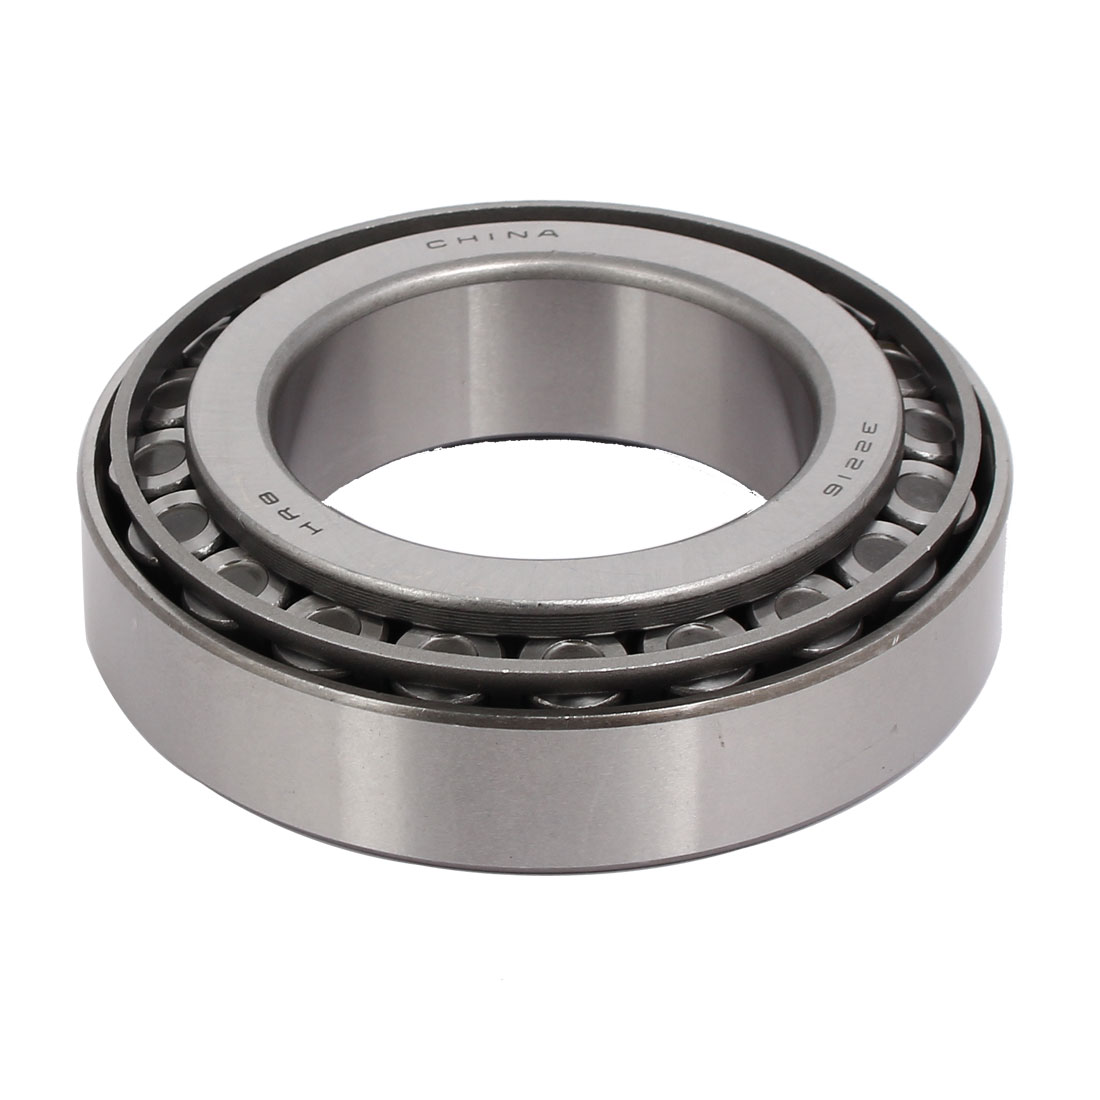 140mmx79mmx37mm 32216 Single Row Tapered Roller Bearing Silver Tone